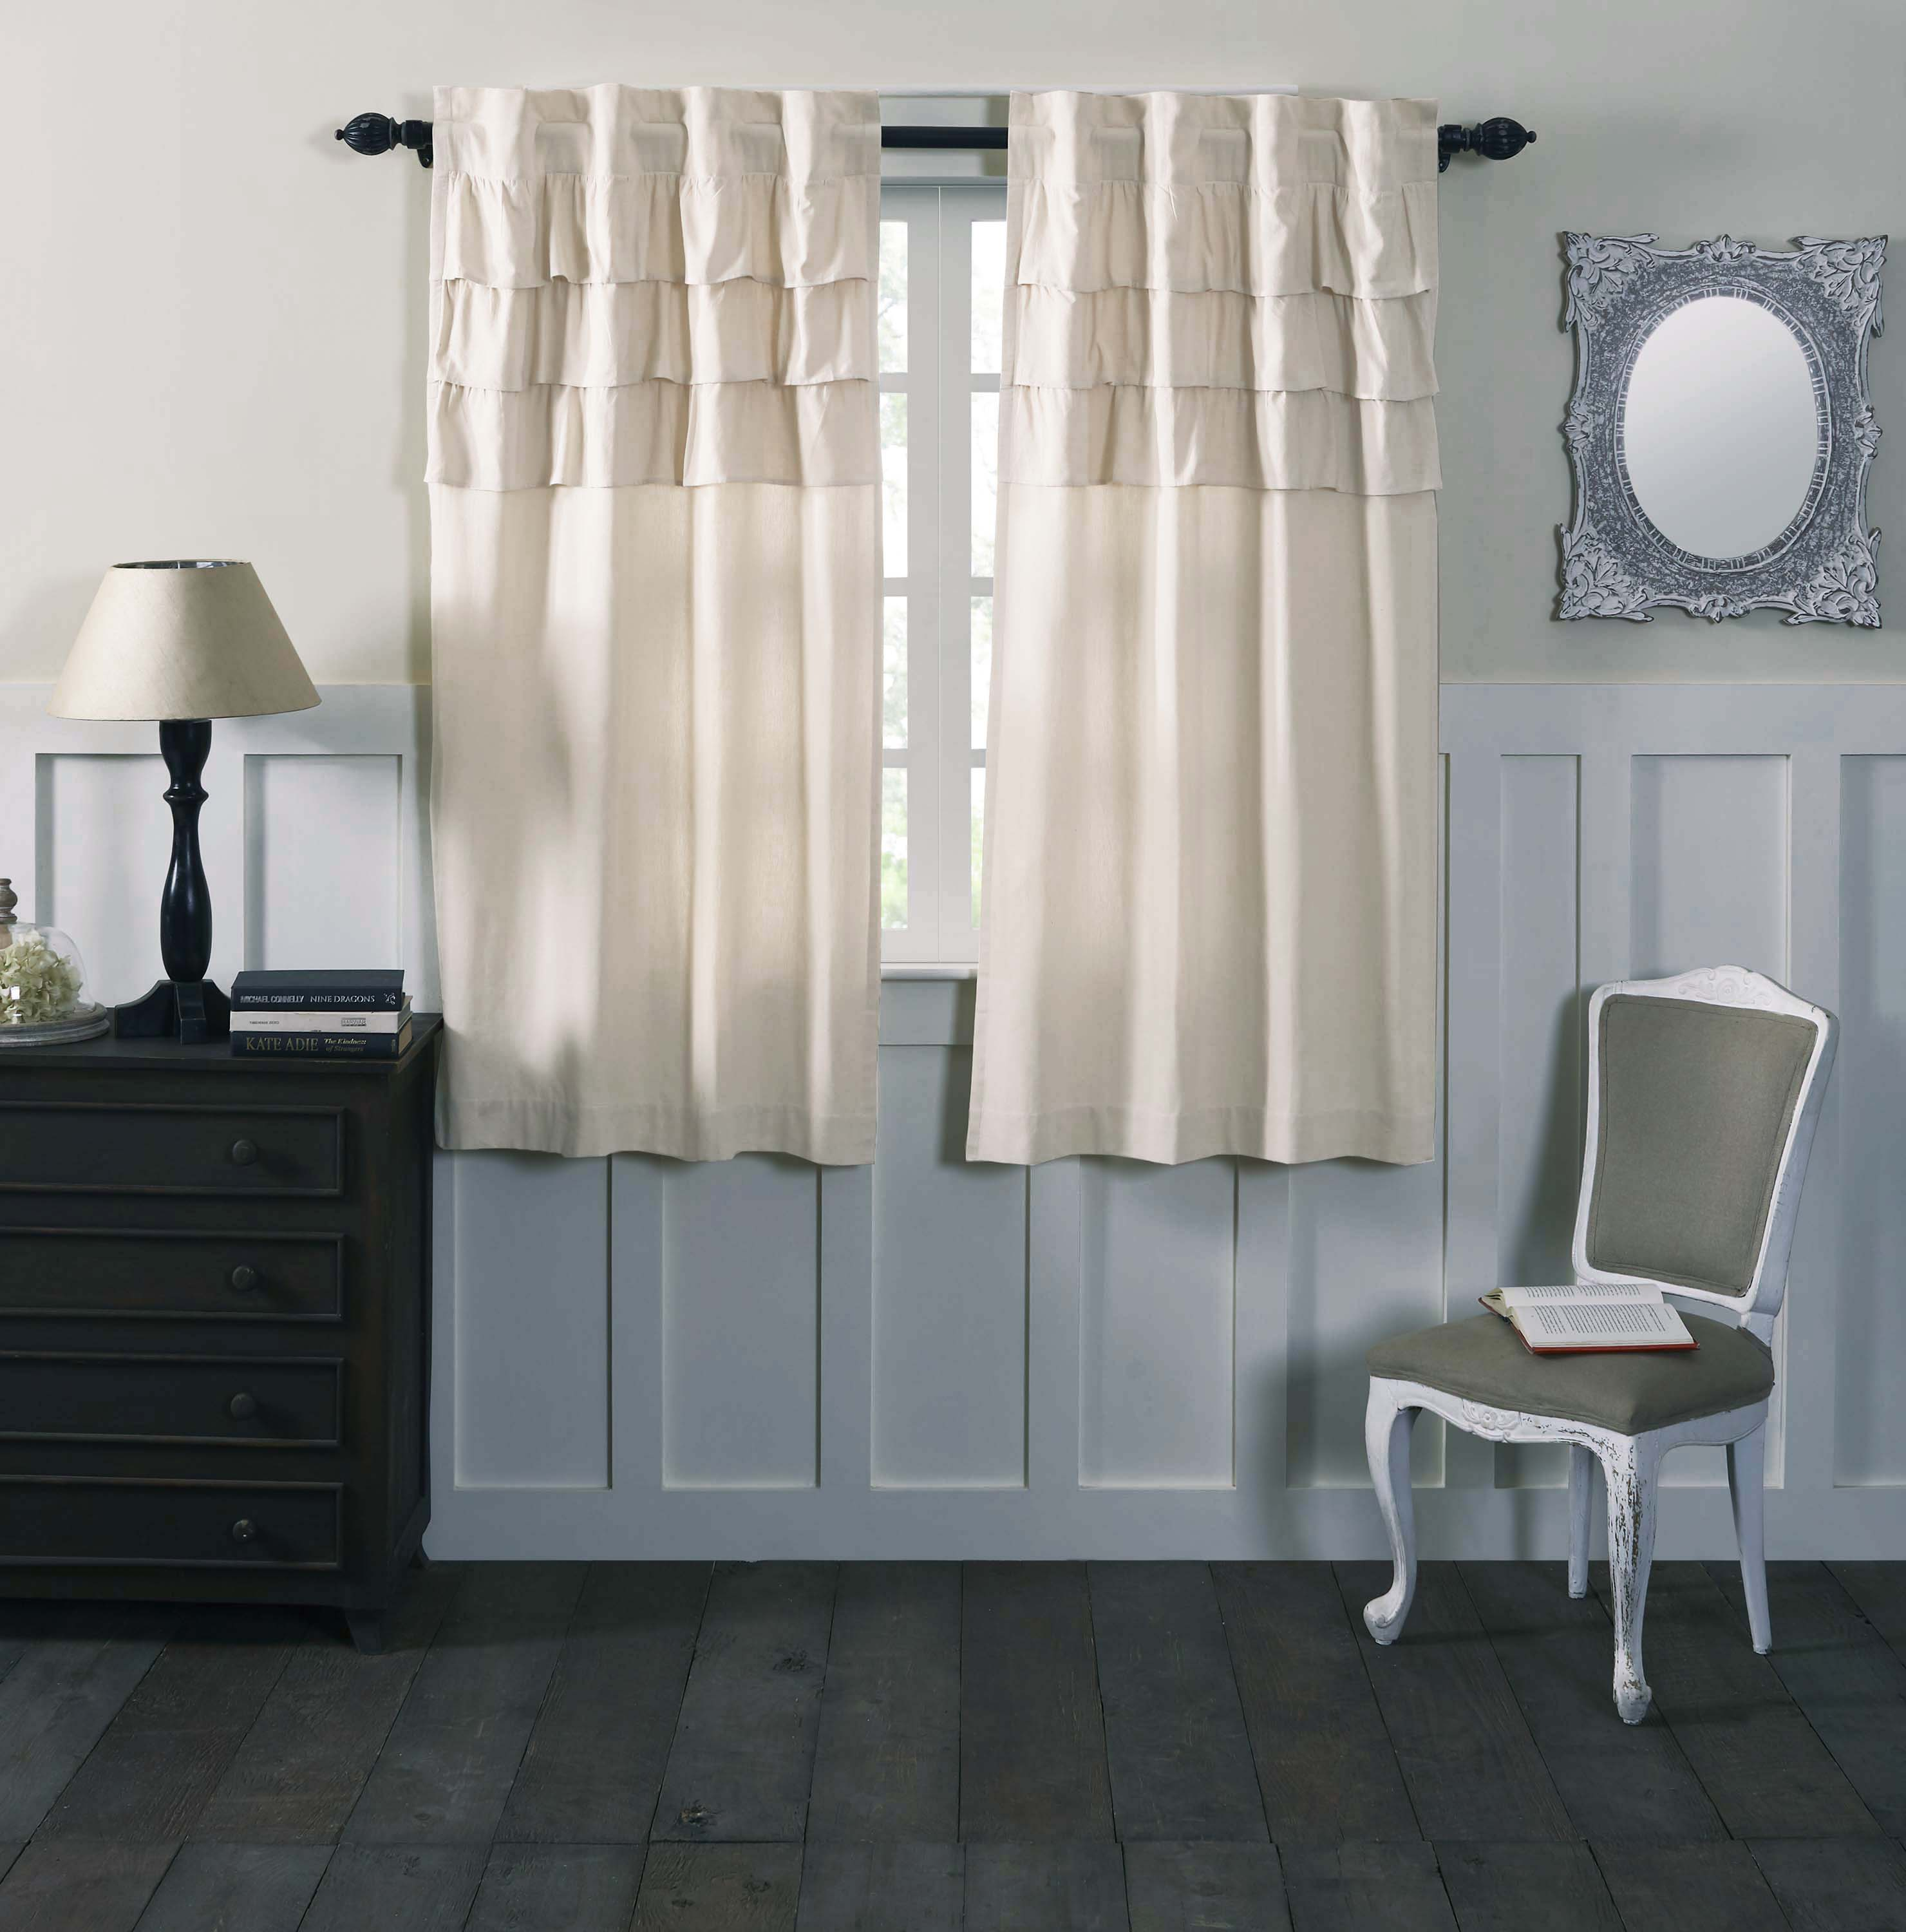 voile xxx white world treatments chambray curtain set do market cotton window crinkle curtains drapes sheer of rugs category